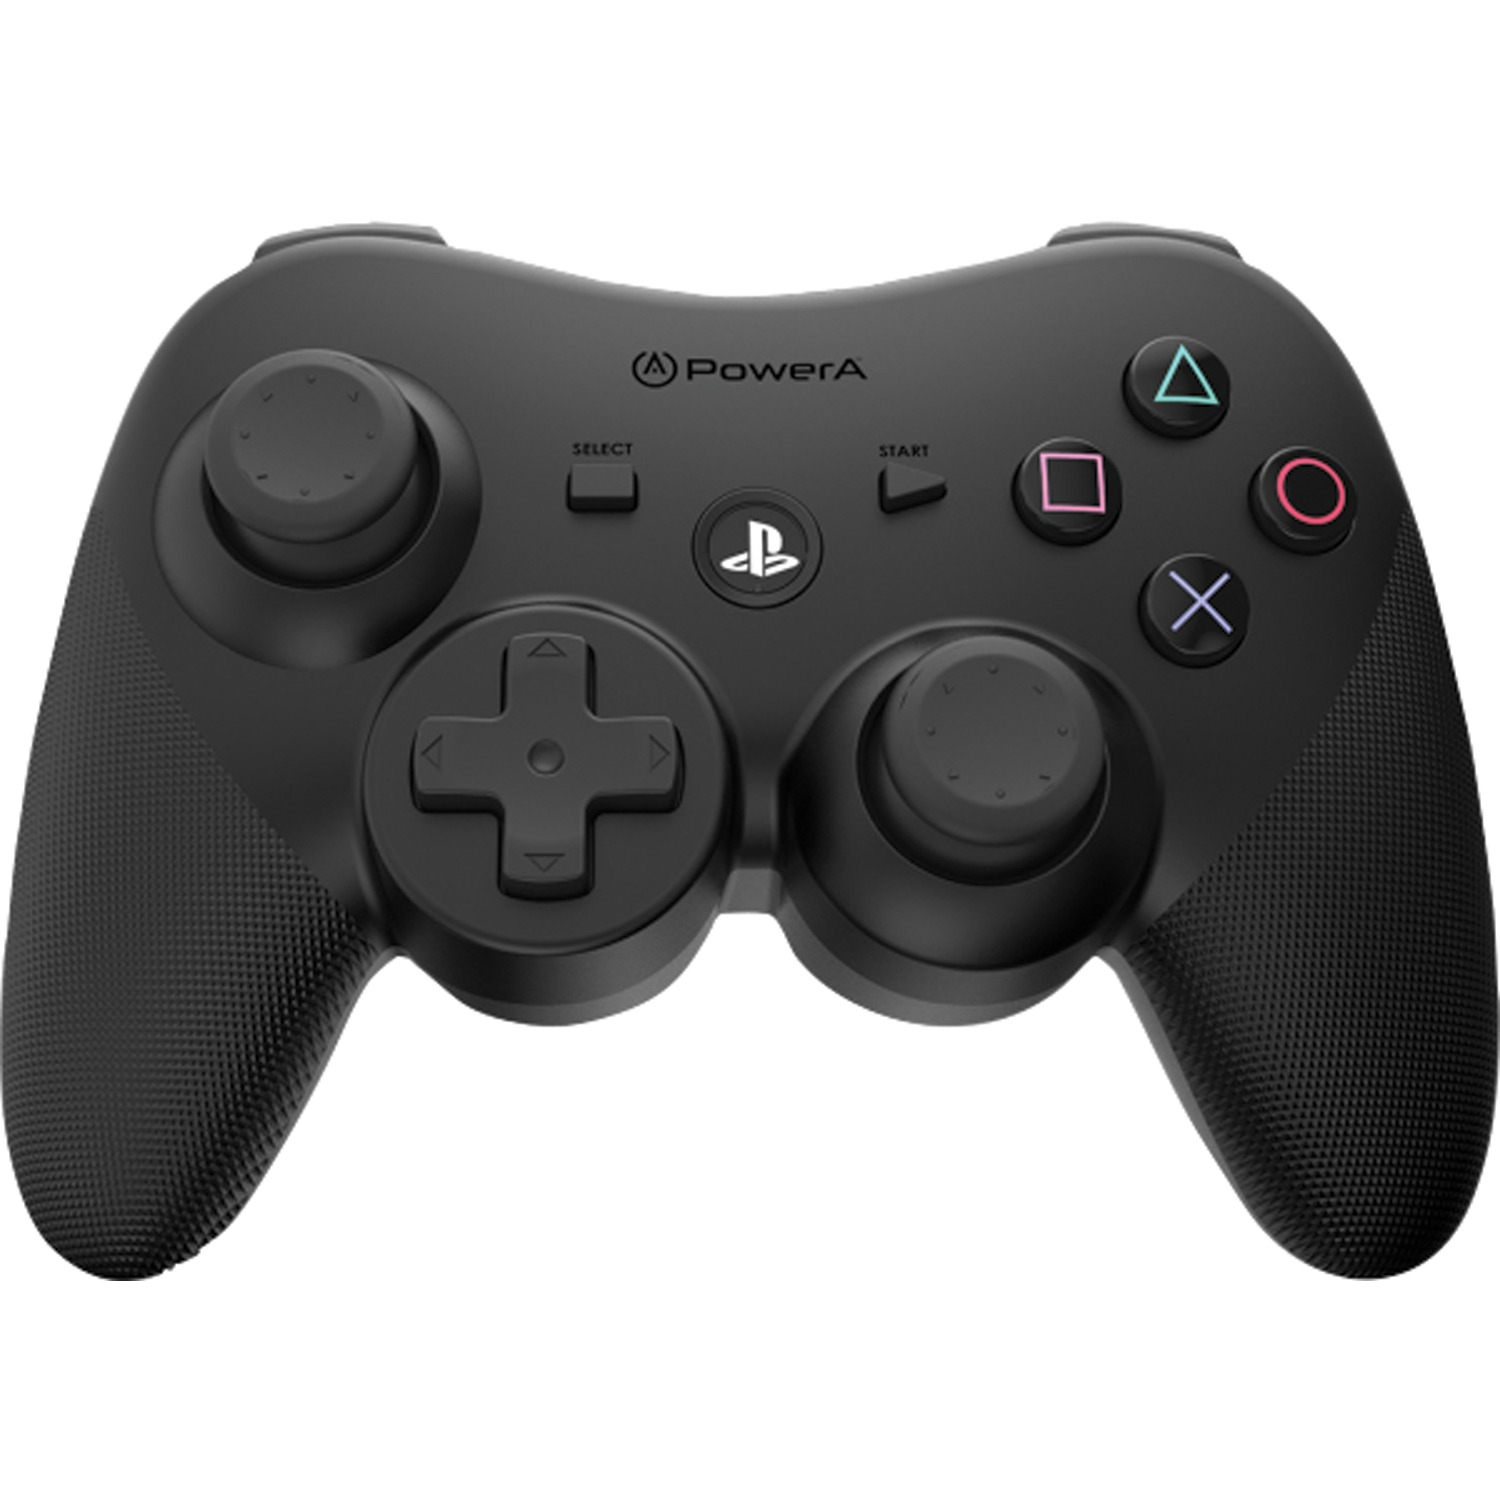 PowerA Wireless Controller for Playstation 3 (1427441-01)